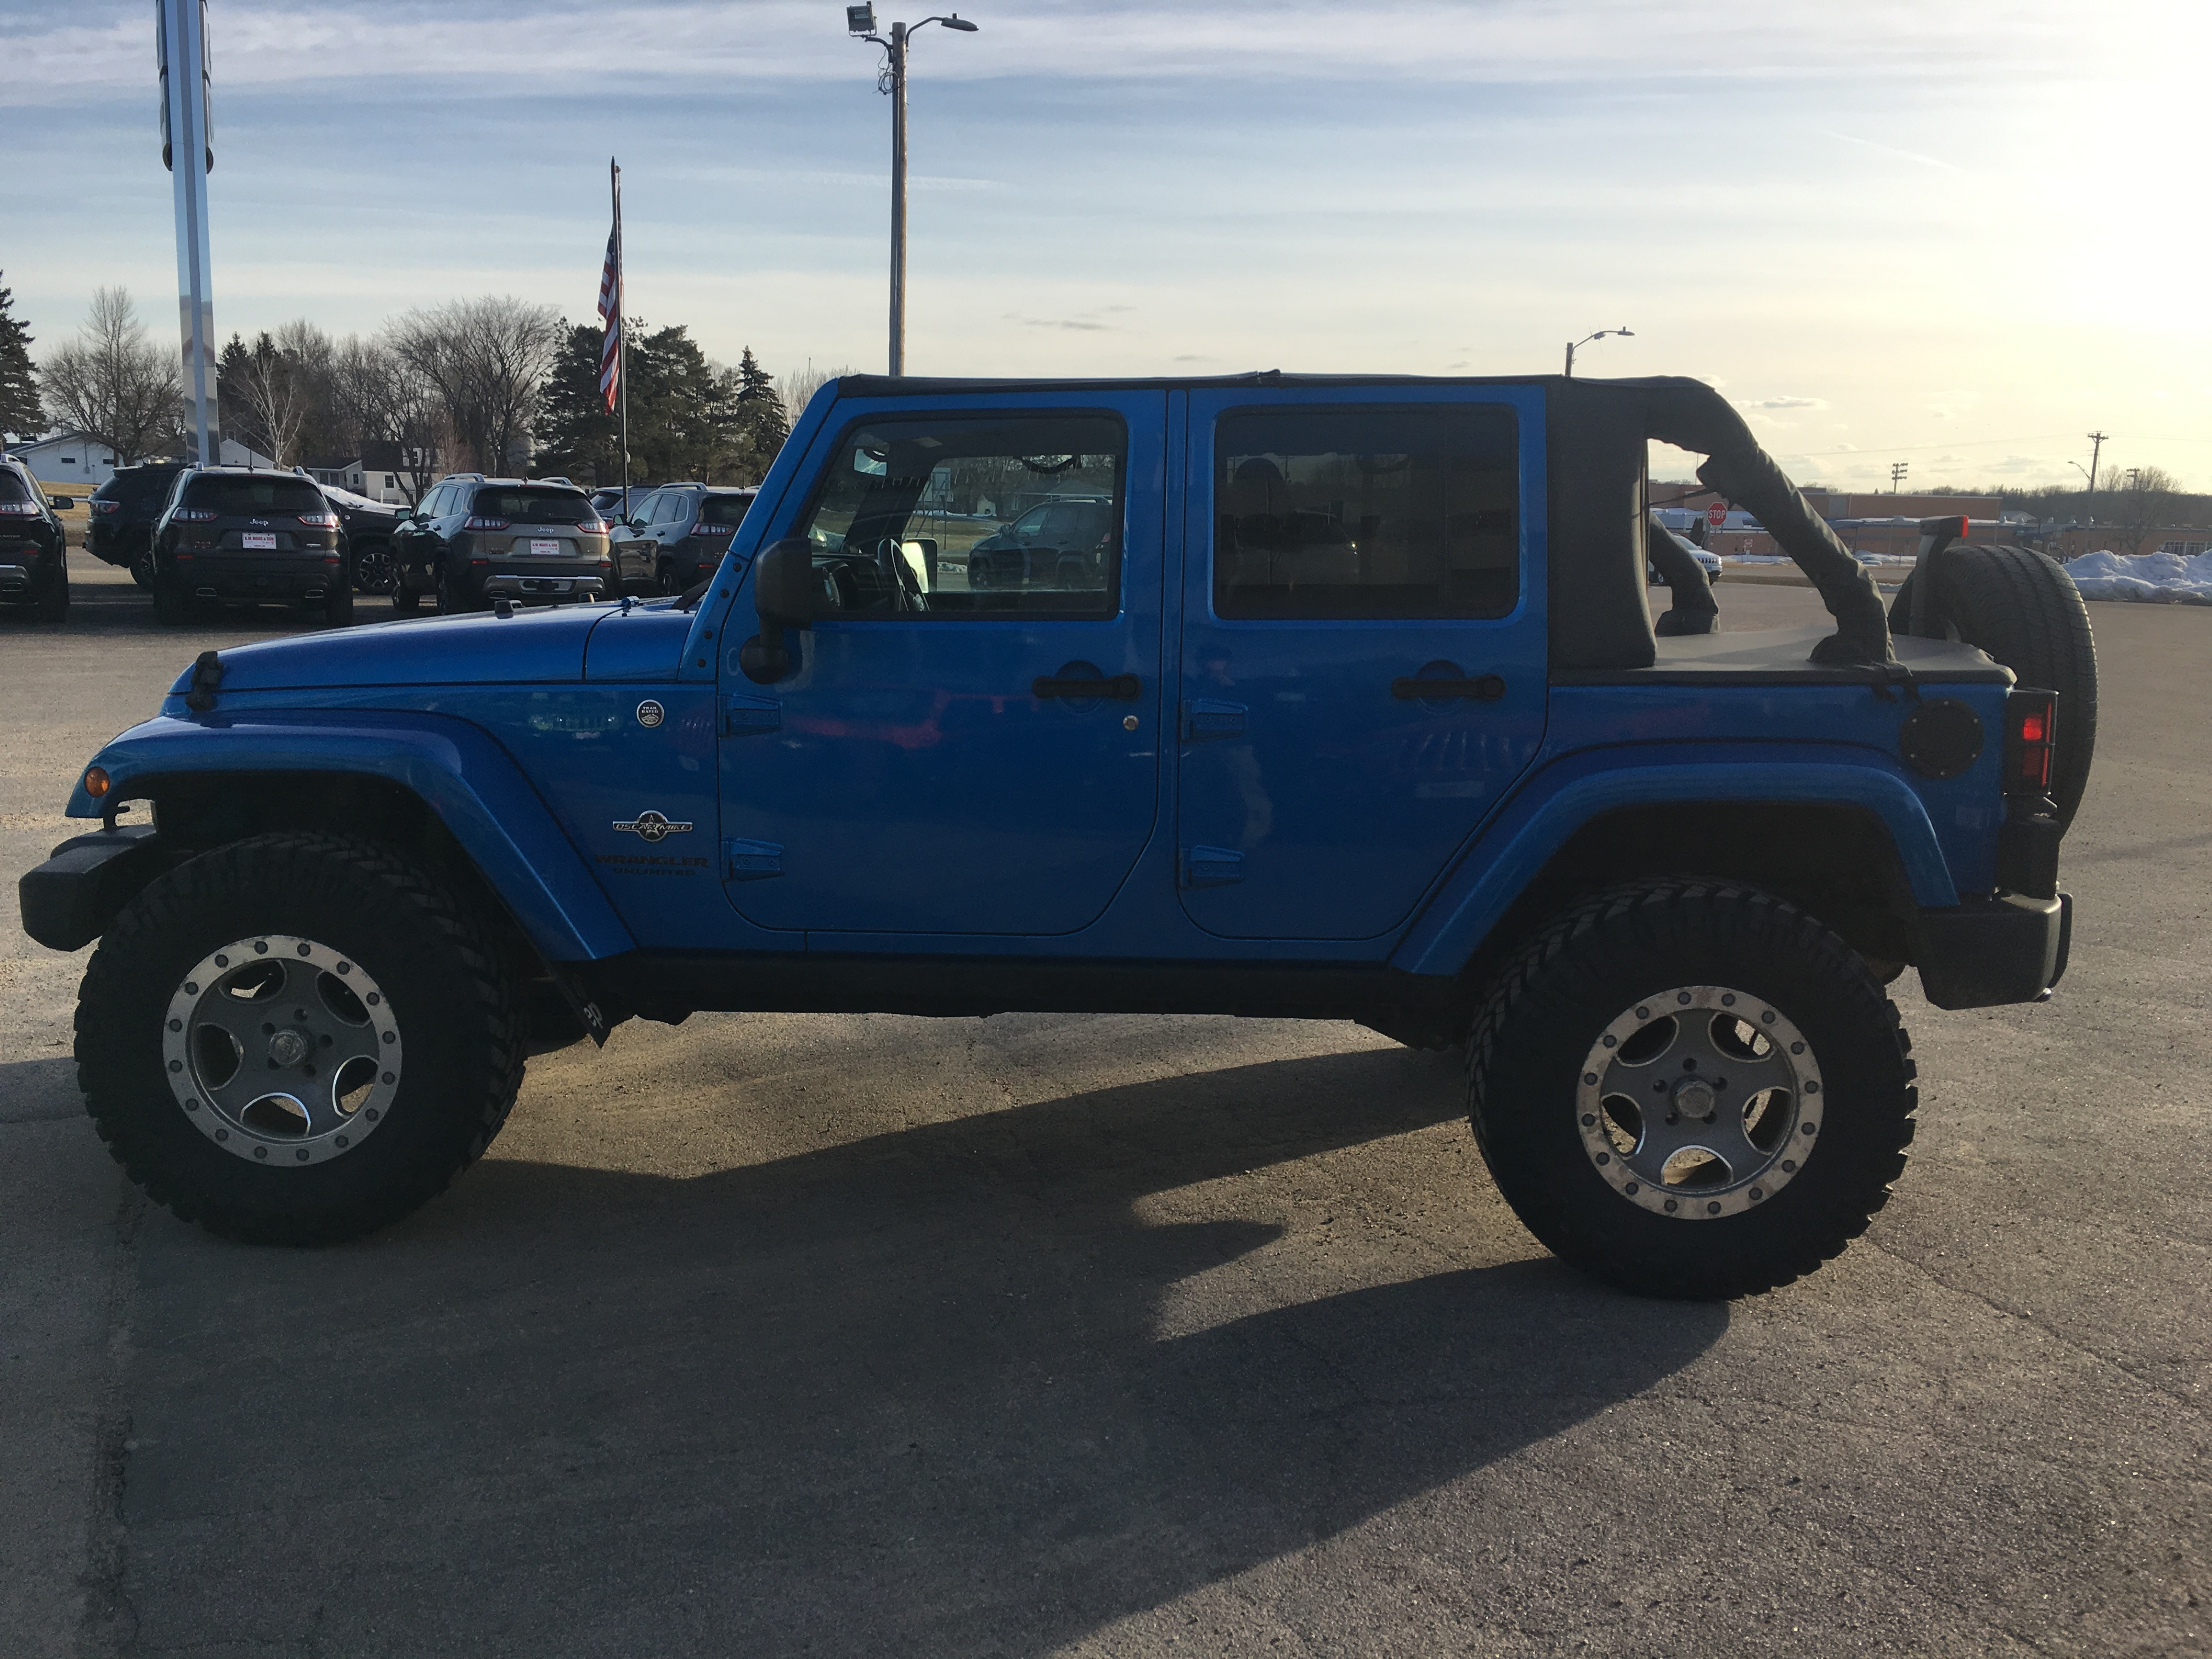 0dc04fb0 Used 2014 Jeep Wrangler Unlimited For Sale at A. M. Maus and Son | VIN:  1C4BJWDG8EL246445